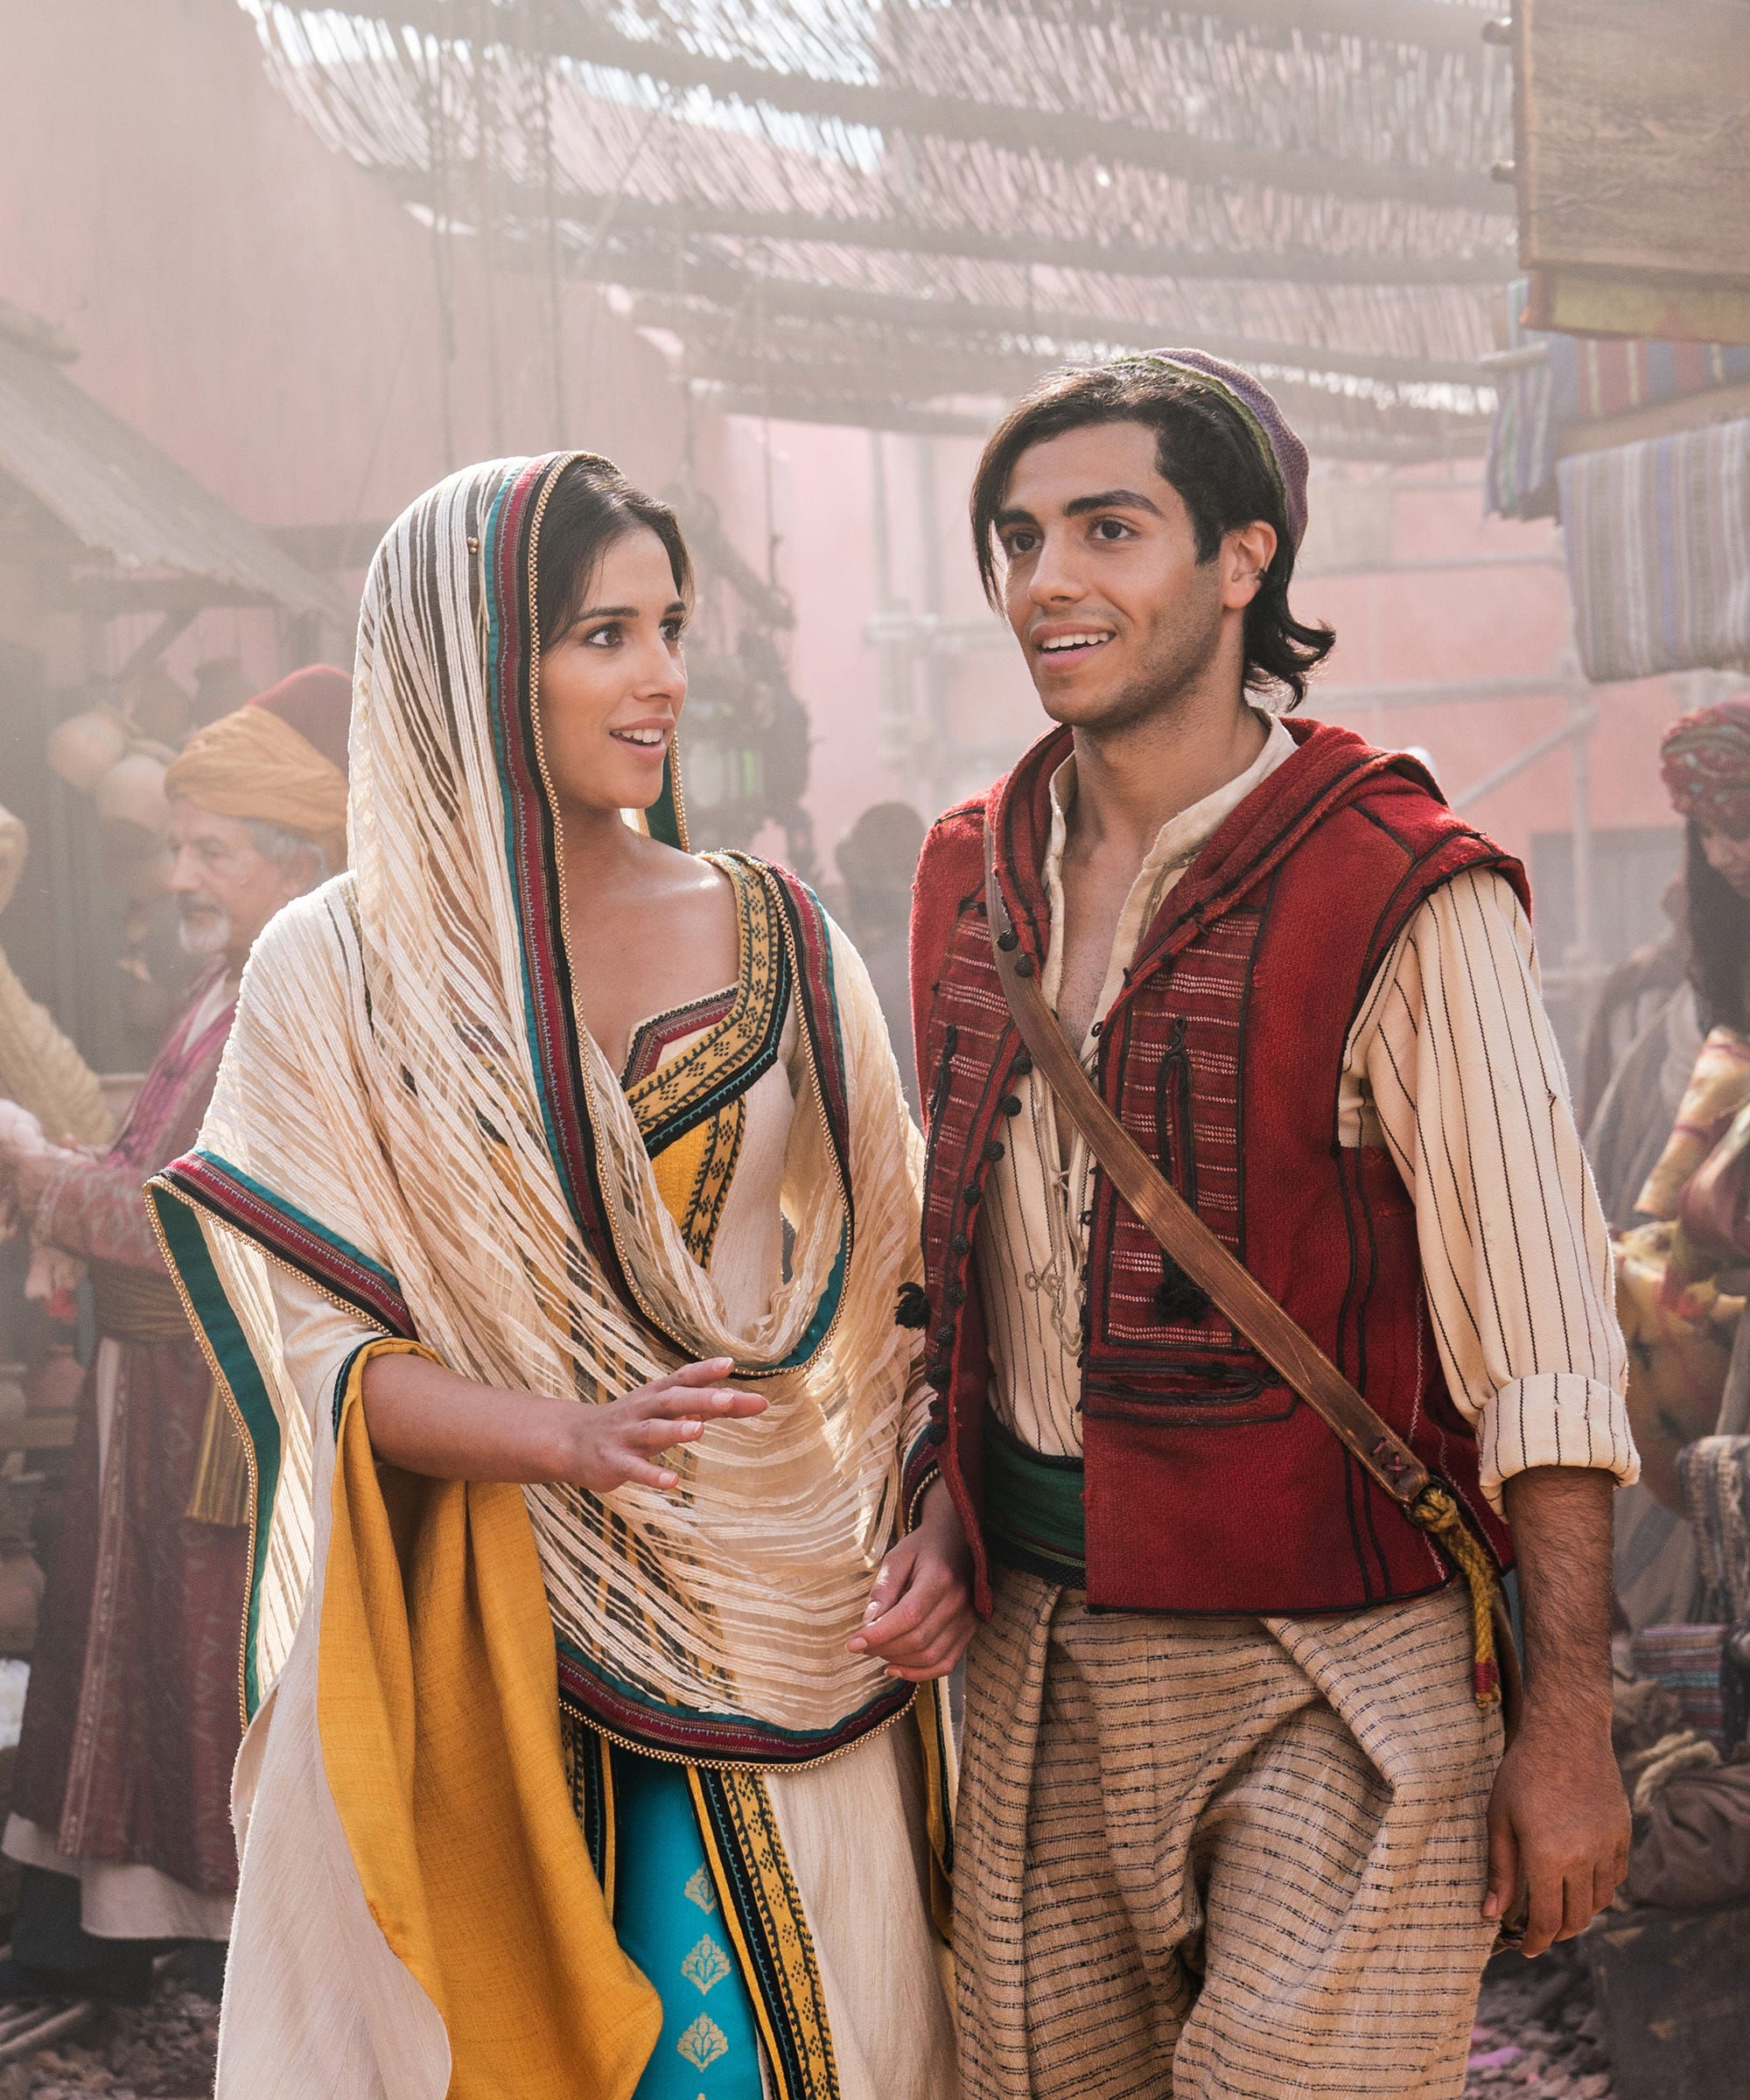 The New Aladdin Is Surprisingly Charming, But It's Not A Whole New World